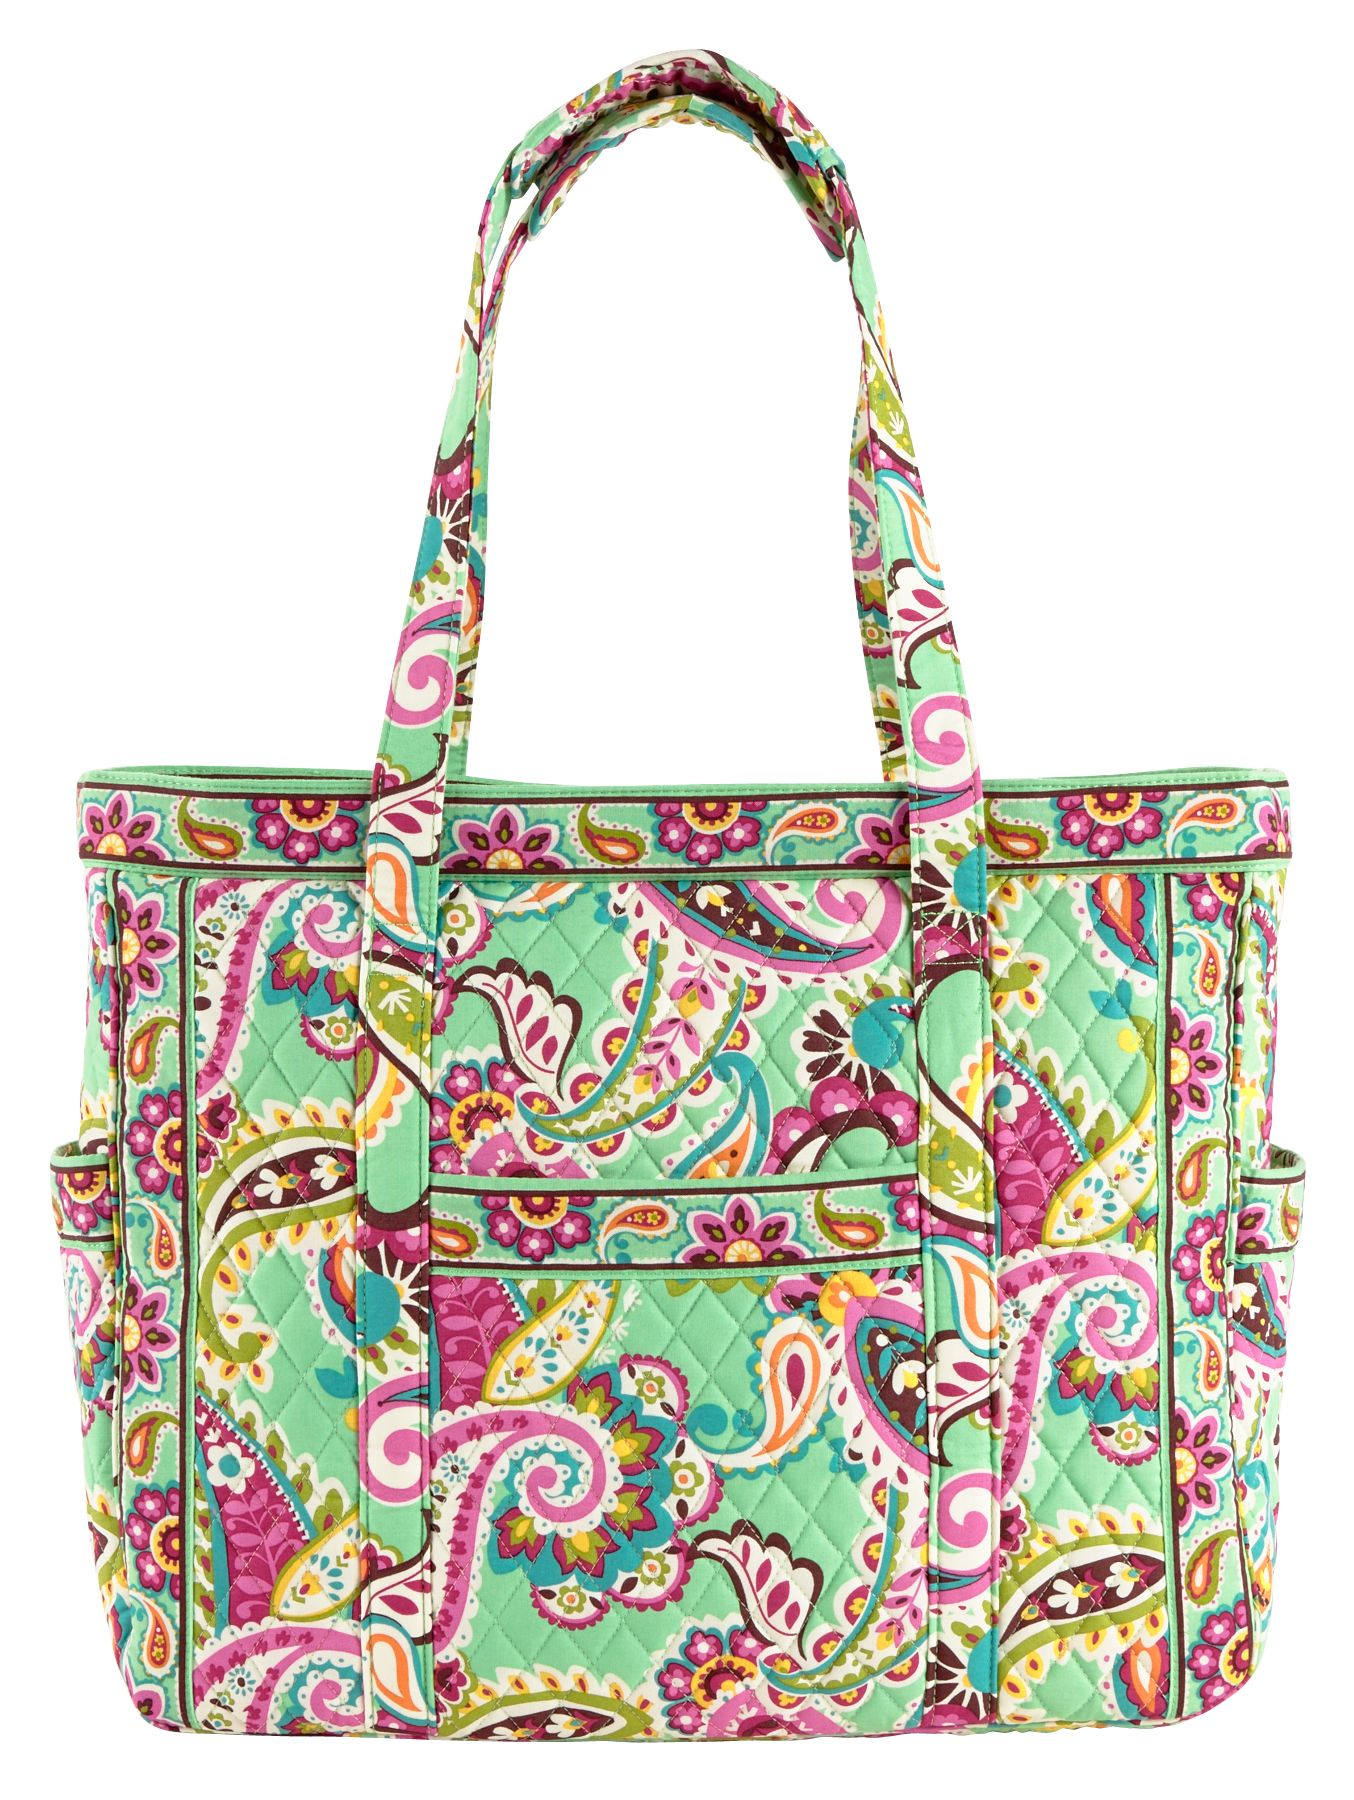 Vera Bradley Get Carried Away Tote Get Carried Away Tote in Tutti